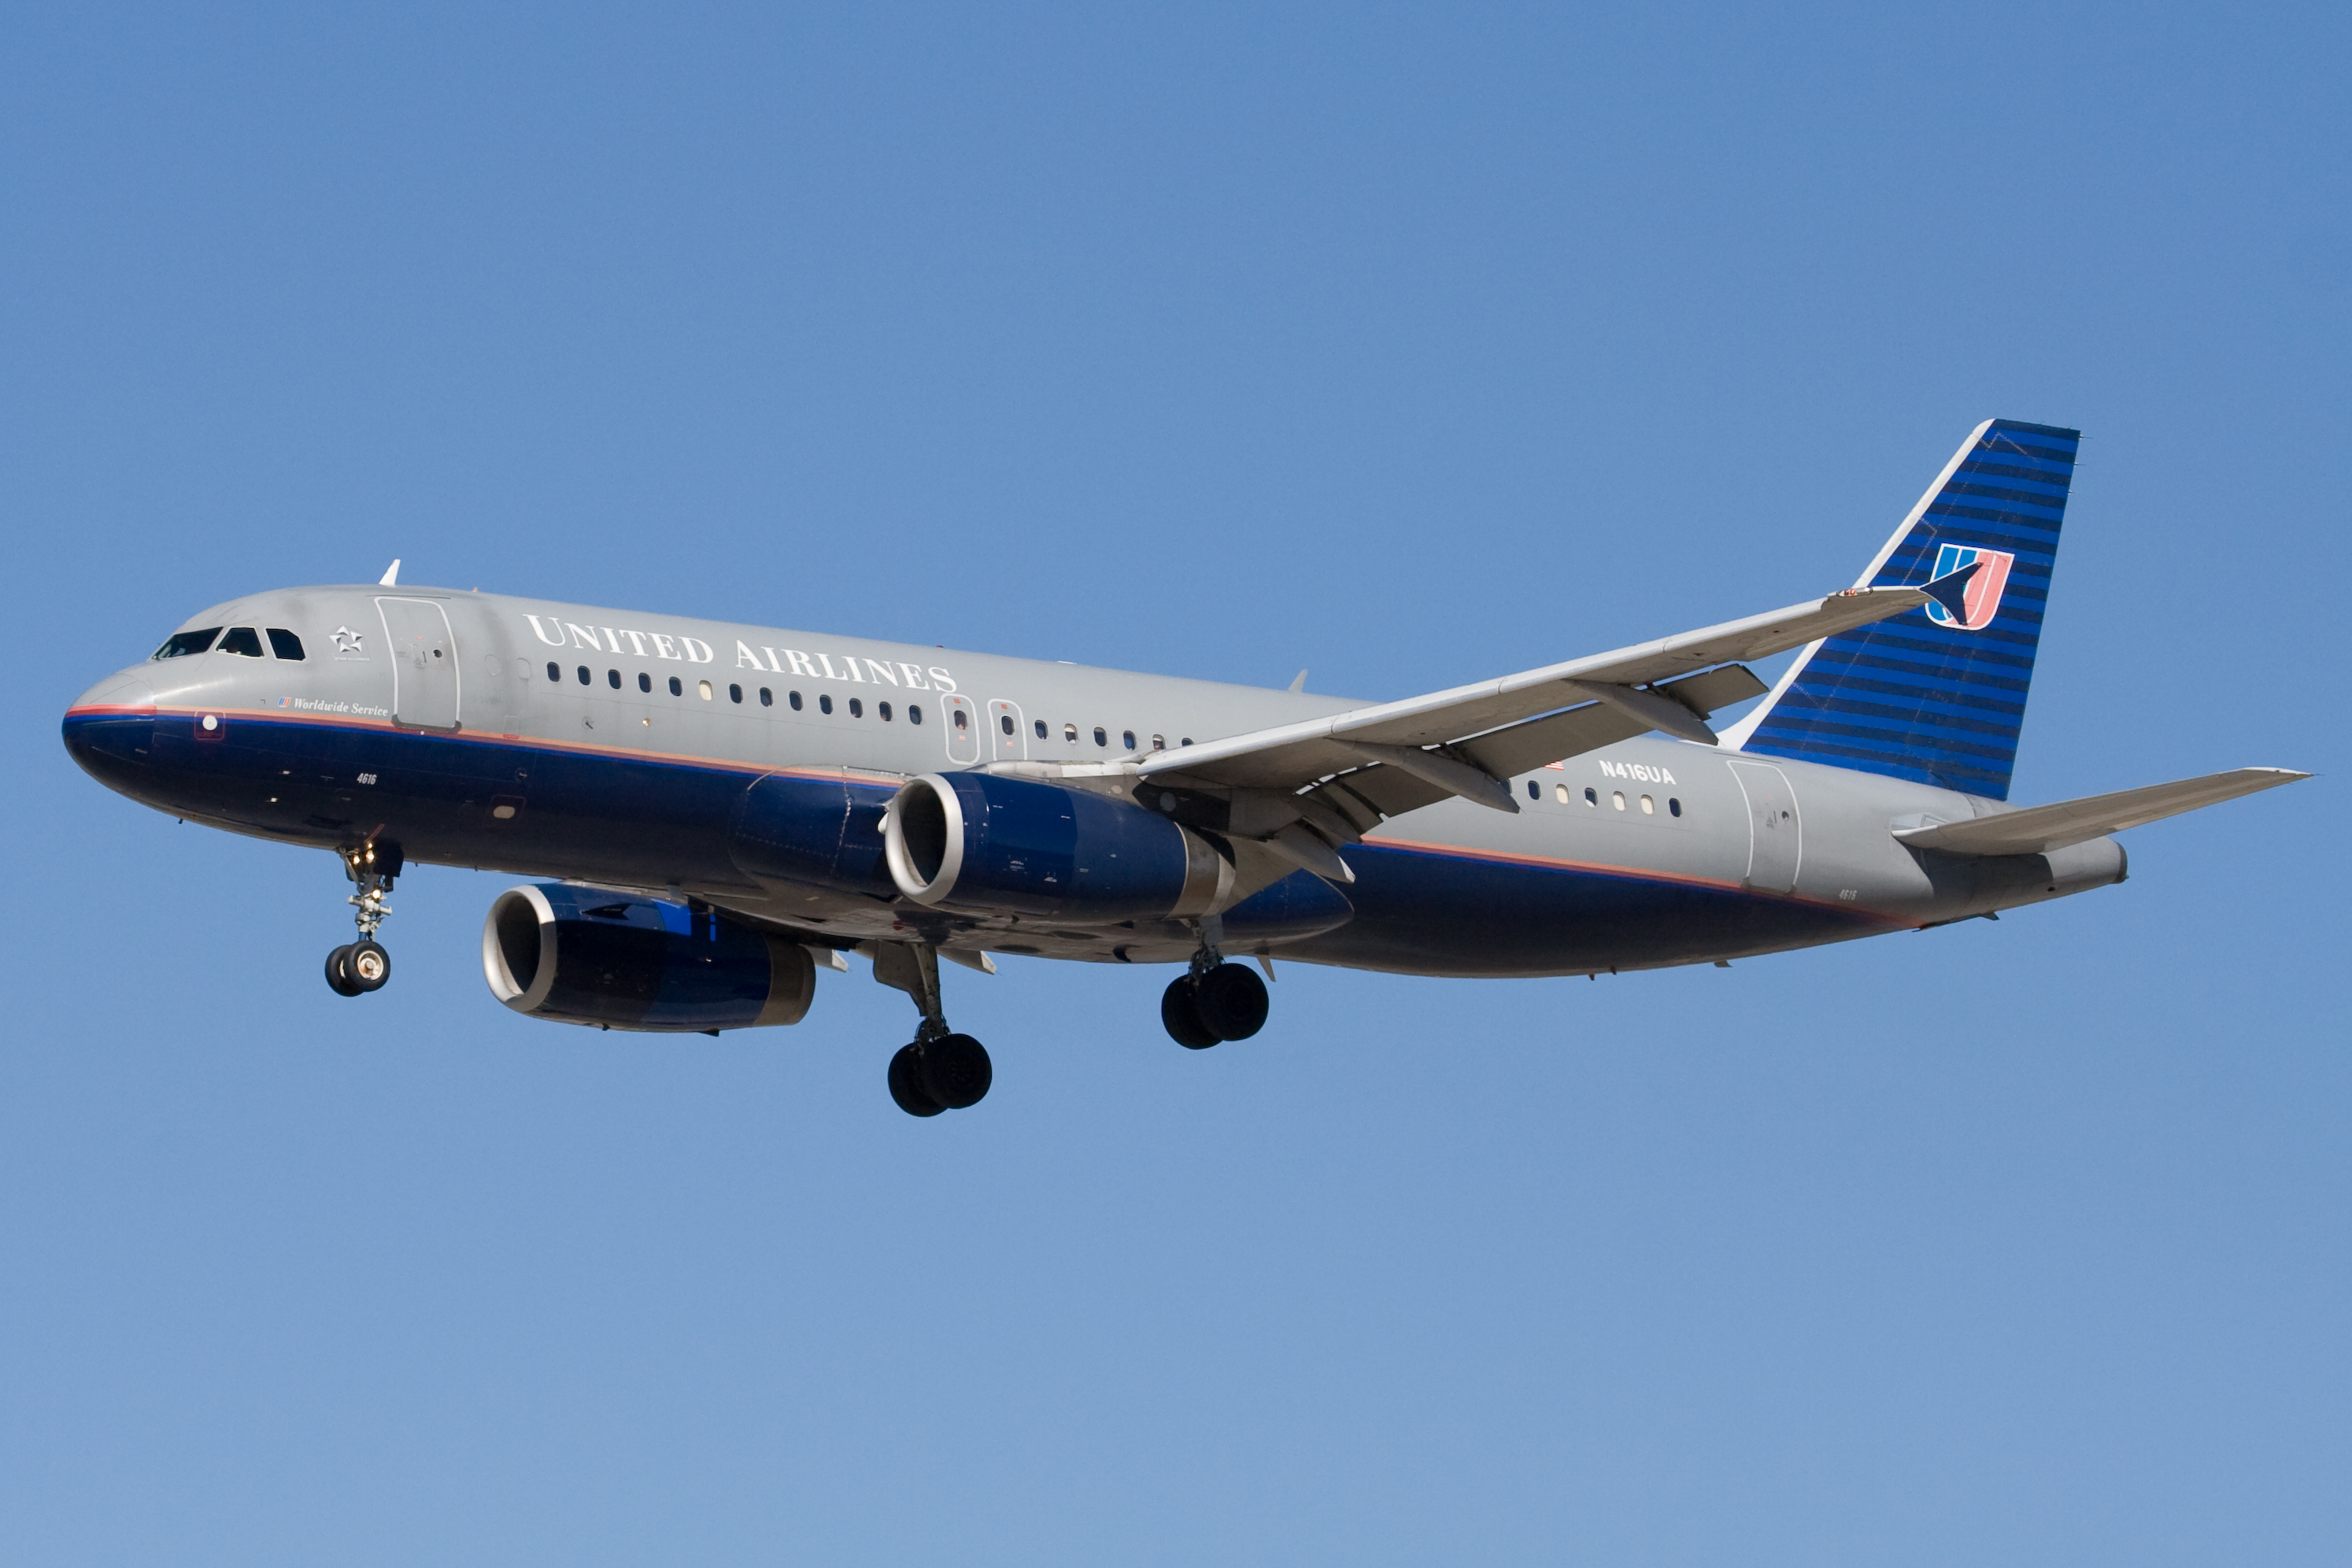 File:United Airlines Airbus A320 (N416UA) landing at San Jose